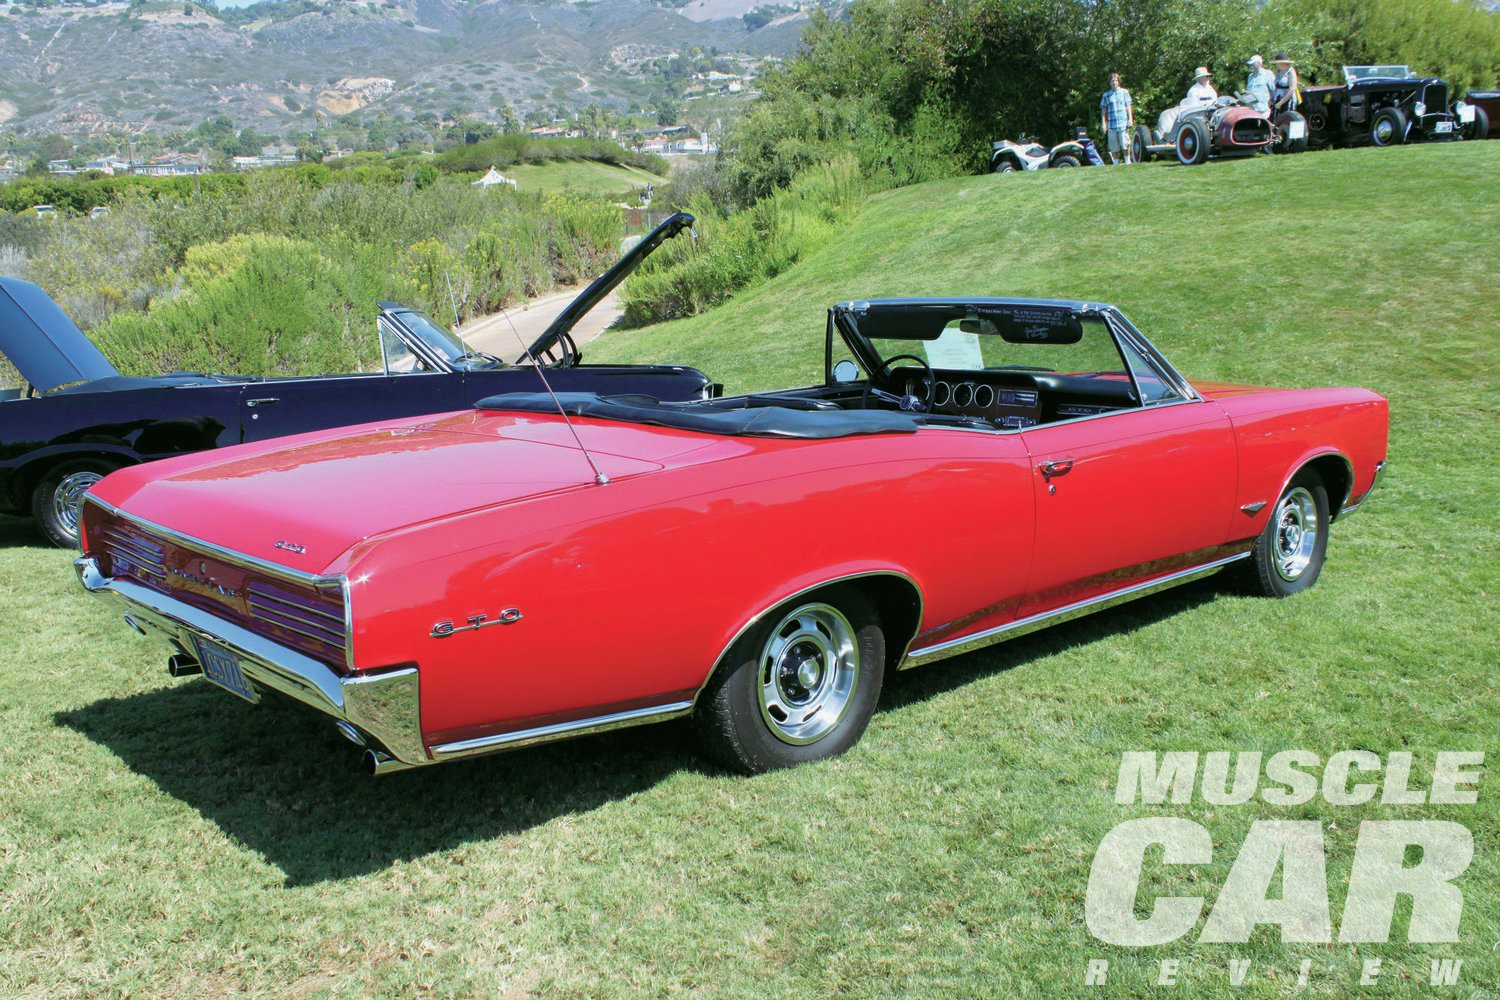 When I saw Dave Stokol's GTO at the Palos Verdes Concours, little did I know the special relationship it had with the Kennedy family.